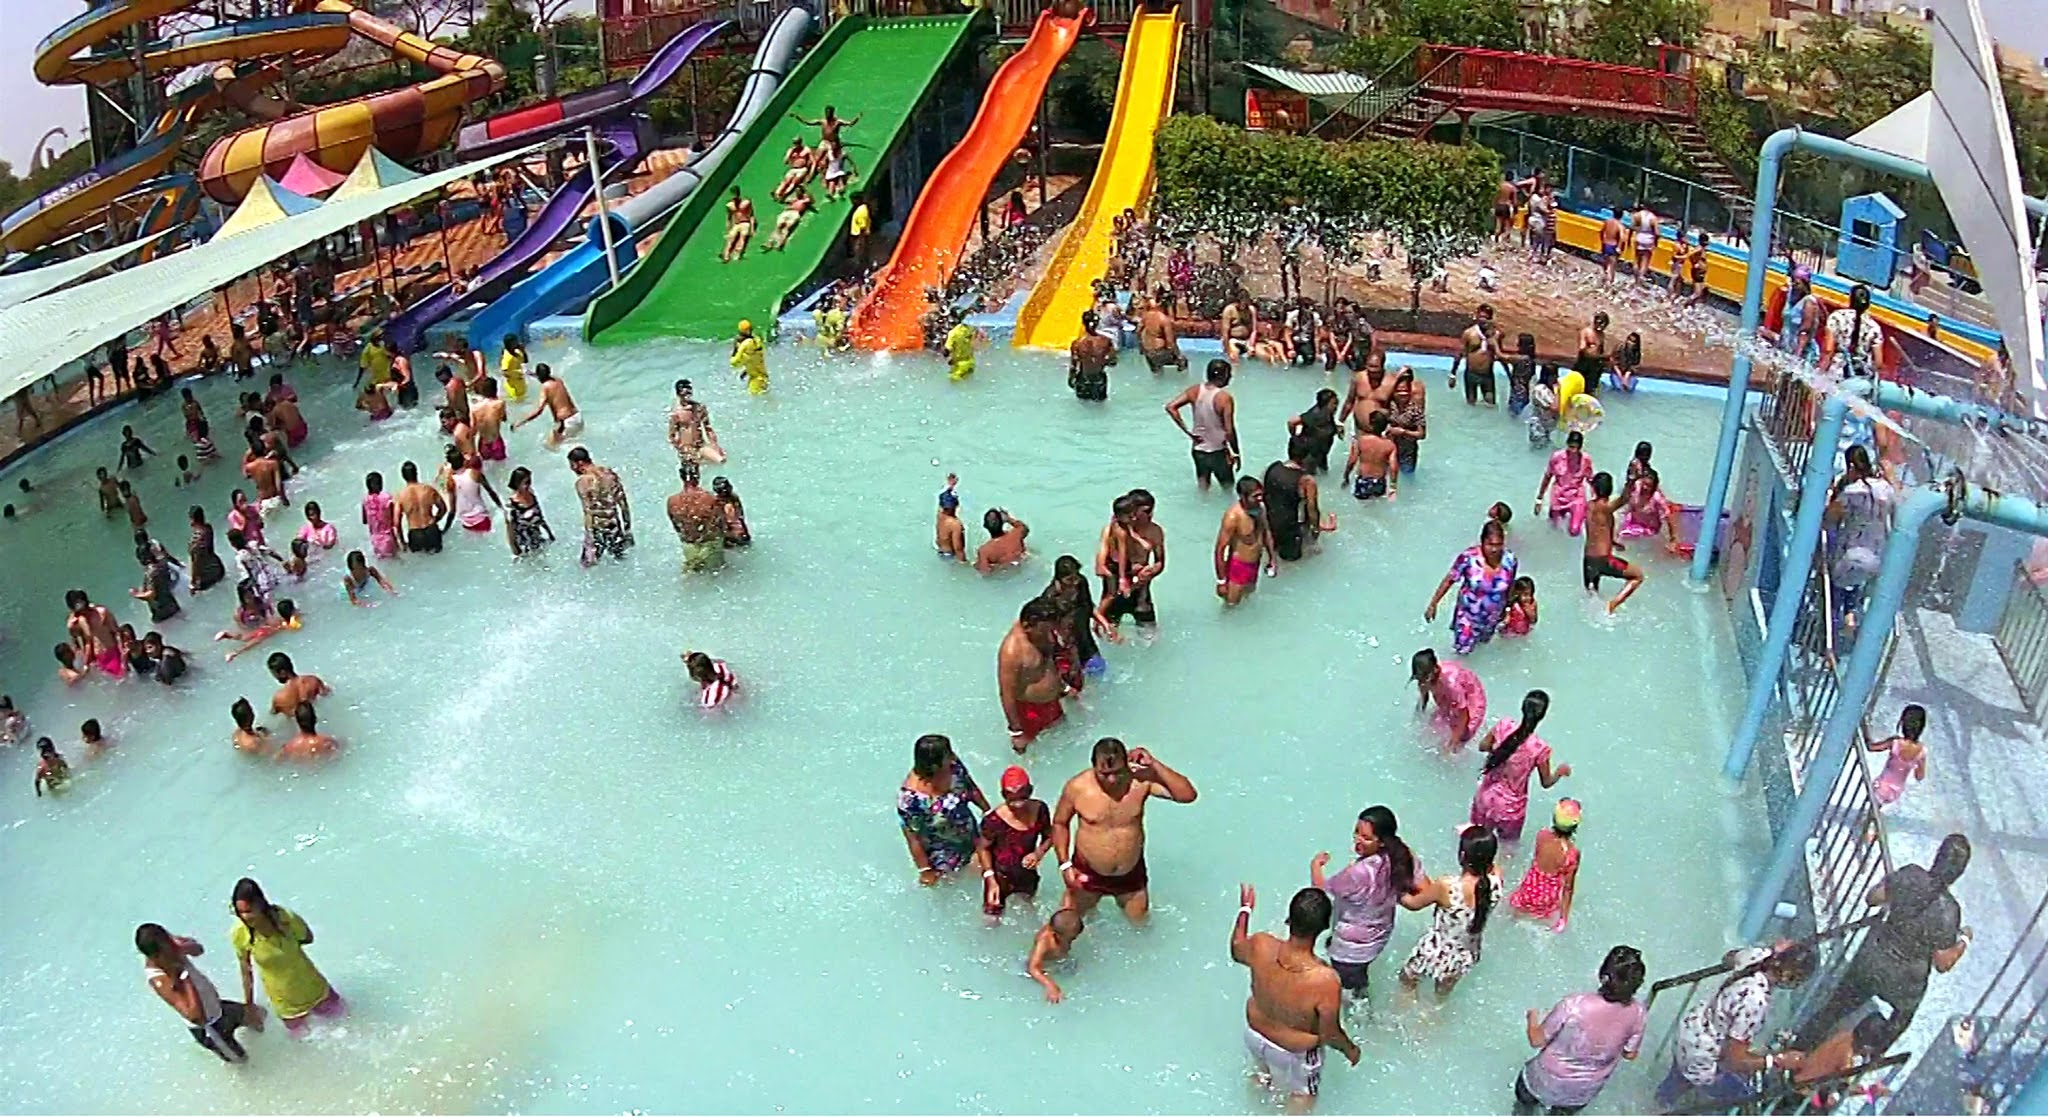 water park in Delhi is the best place to have a thrilling and chilling experience with your friends and family.